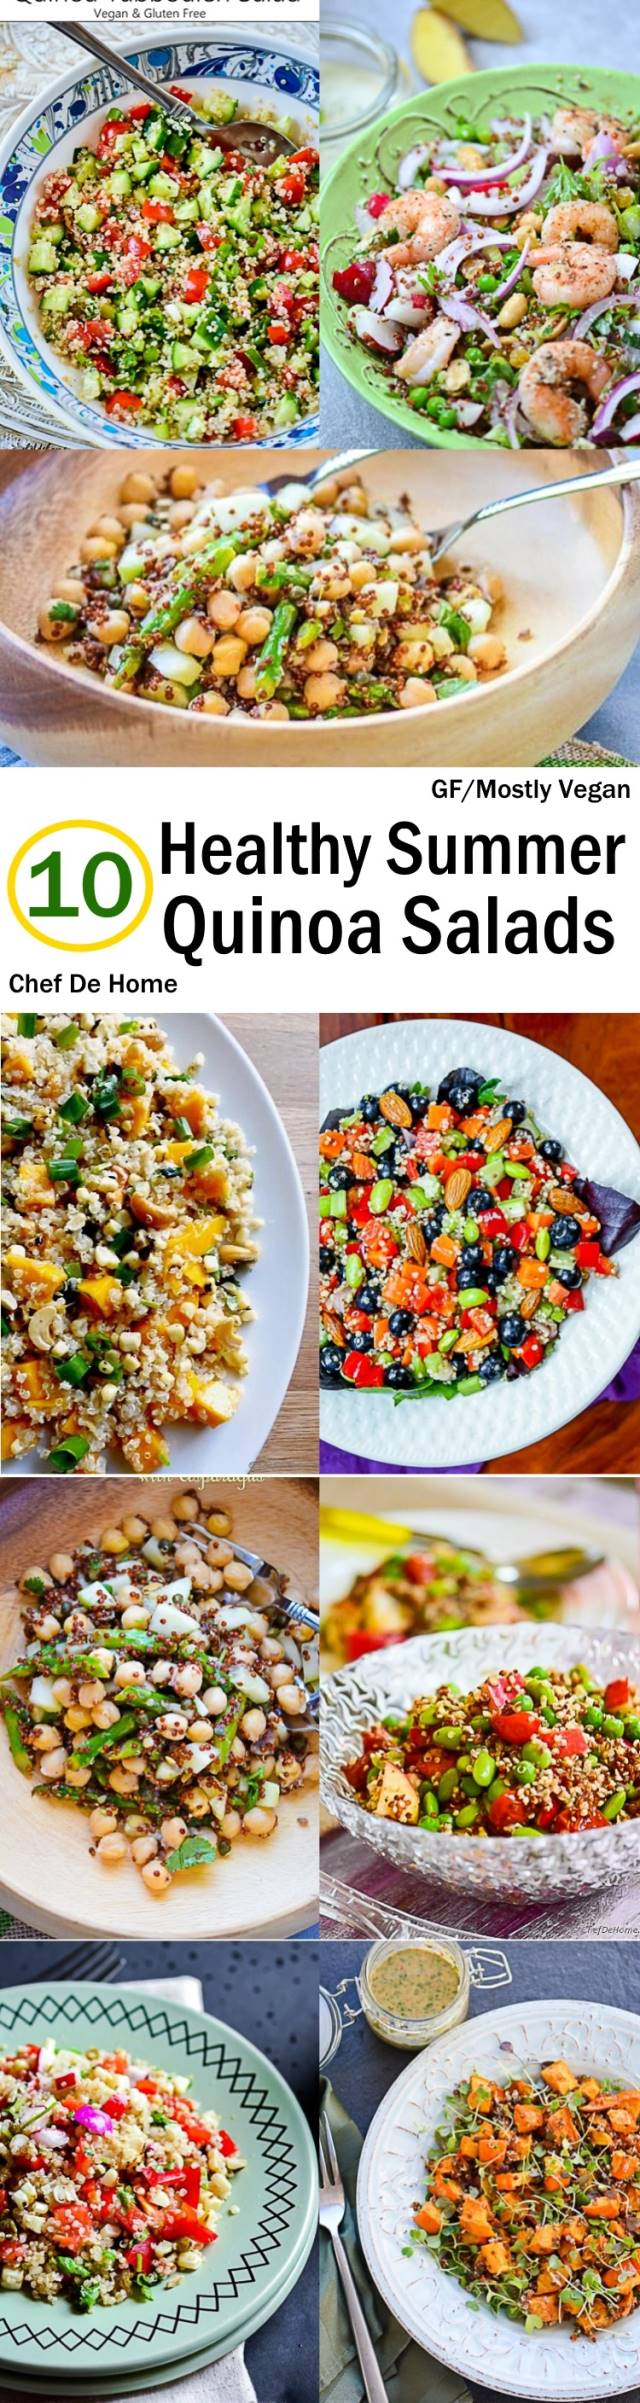 10 Healthy Quinoa Salads